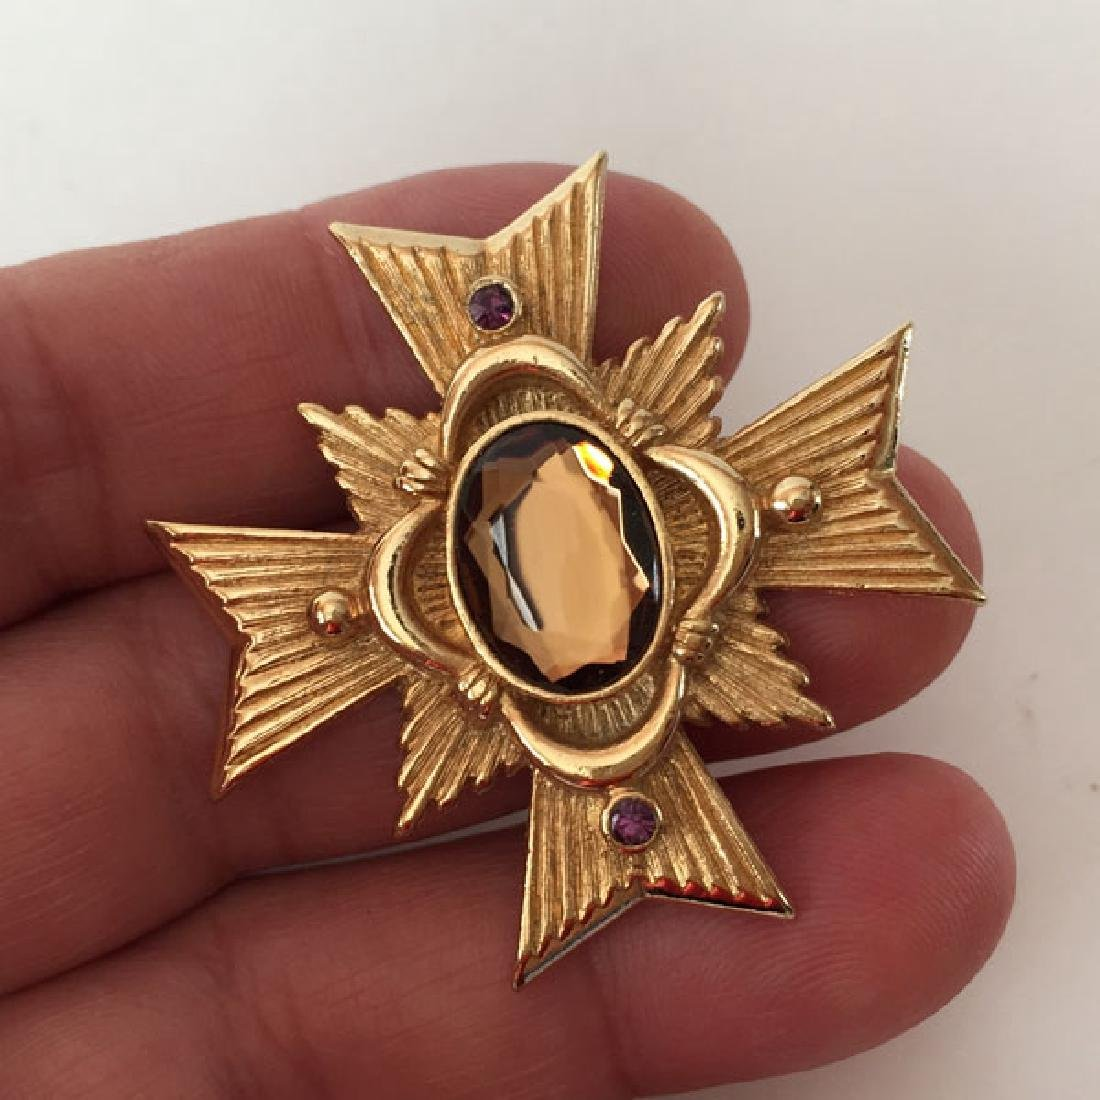 AVON: Gold plated textured CROSS shaped medal / brooch